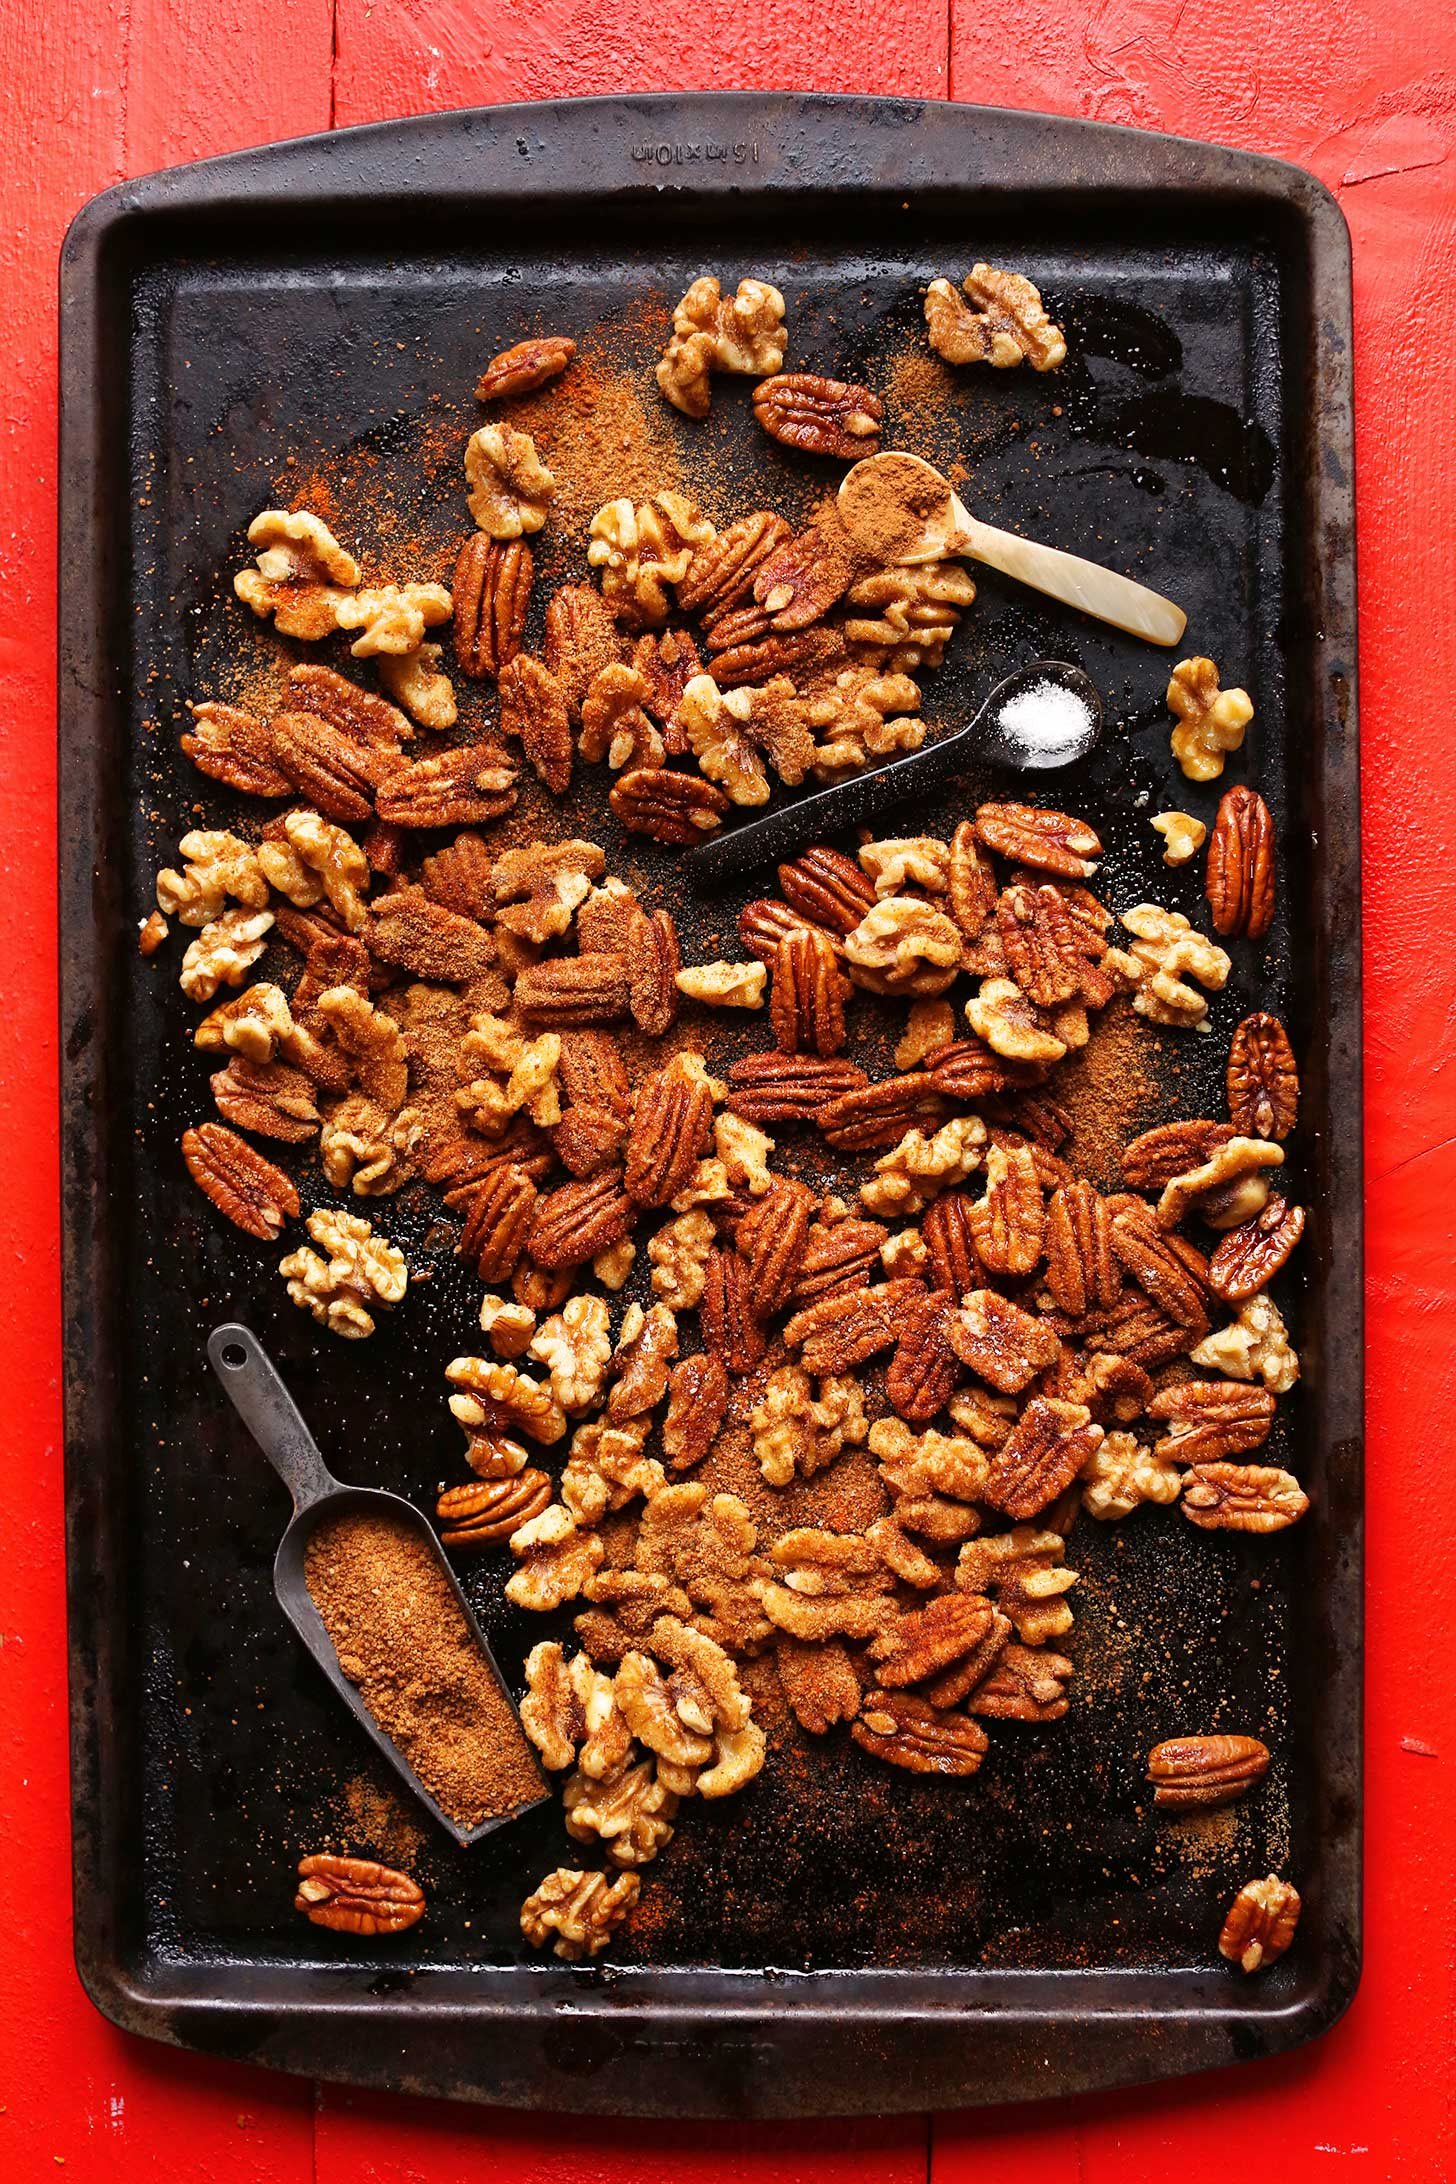 Baking sheet with walnuts and pecans for making holiday spiced nuts